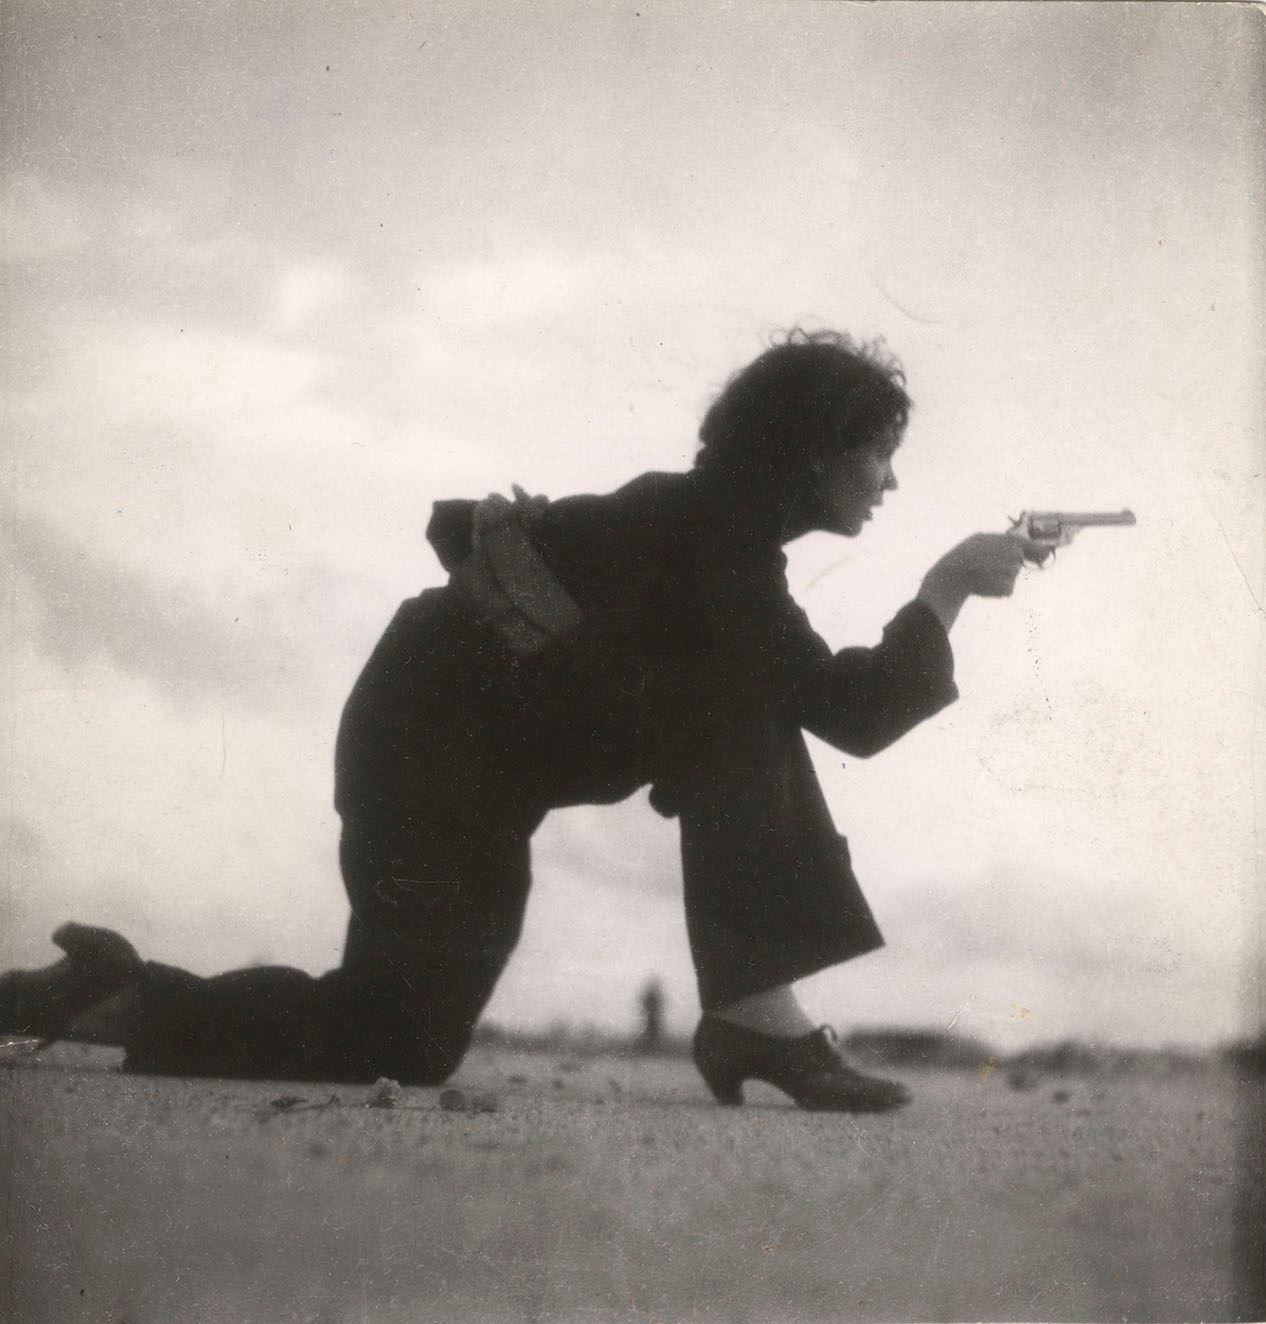 Learn Something New Every Day With Online Video Lessons Taro Navy In July 1937 26 Year Old Gerda Became The First Female Photographer To Die On Assignment When She Was Covering Spanish Civil War